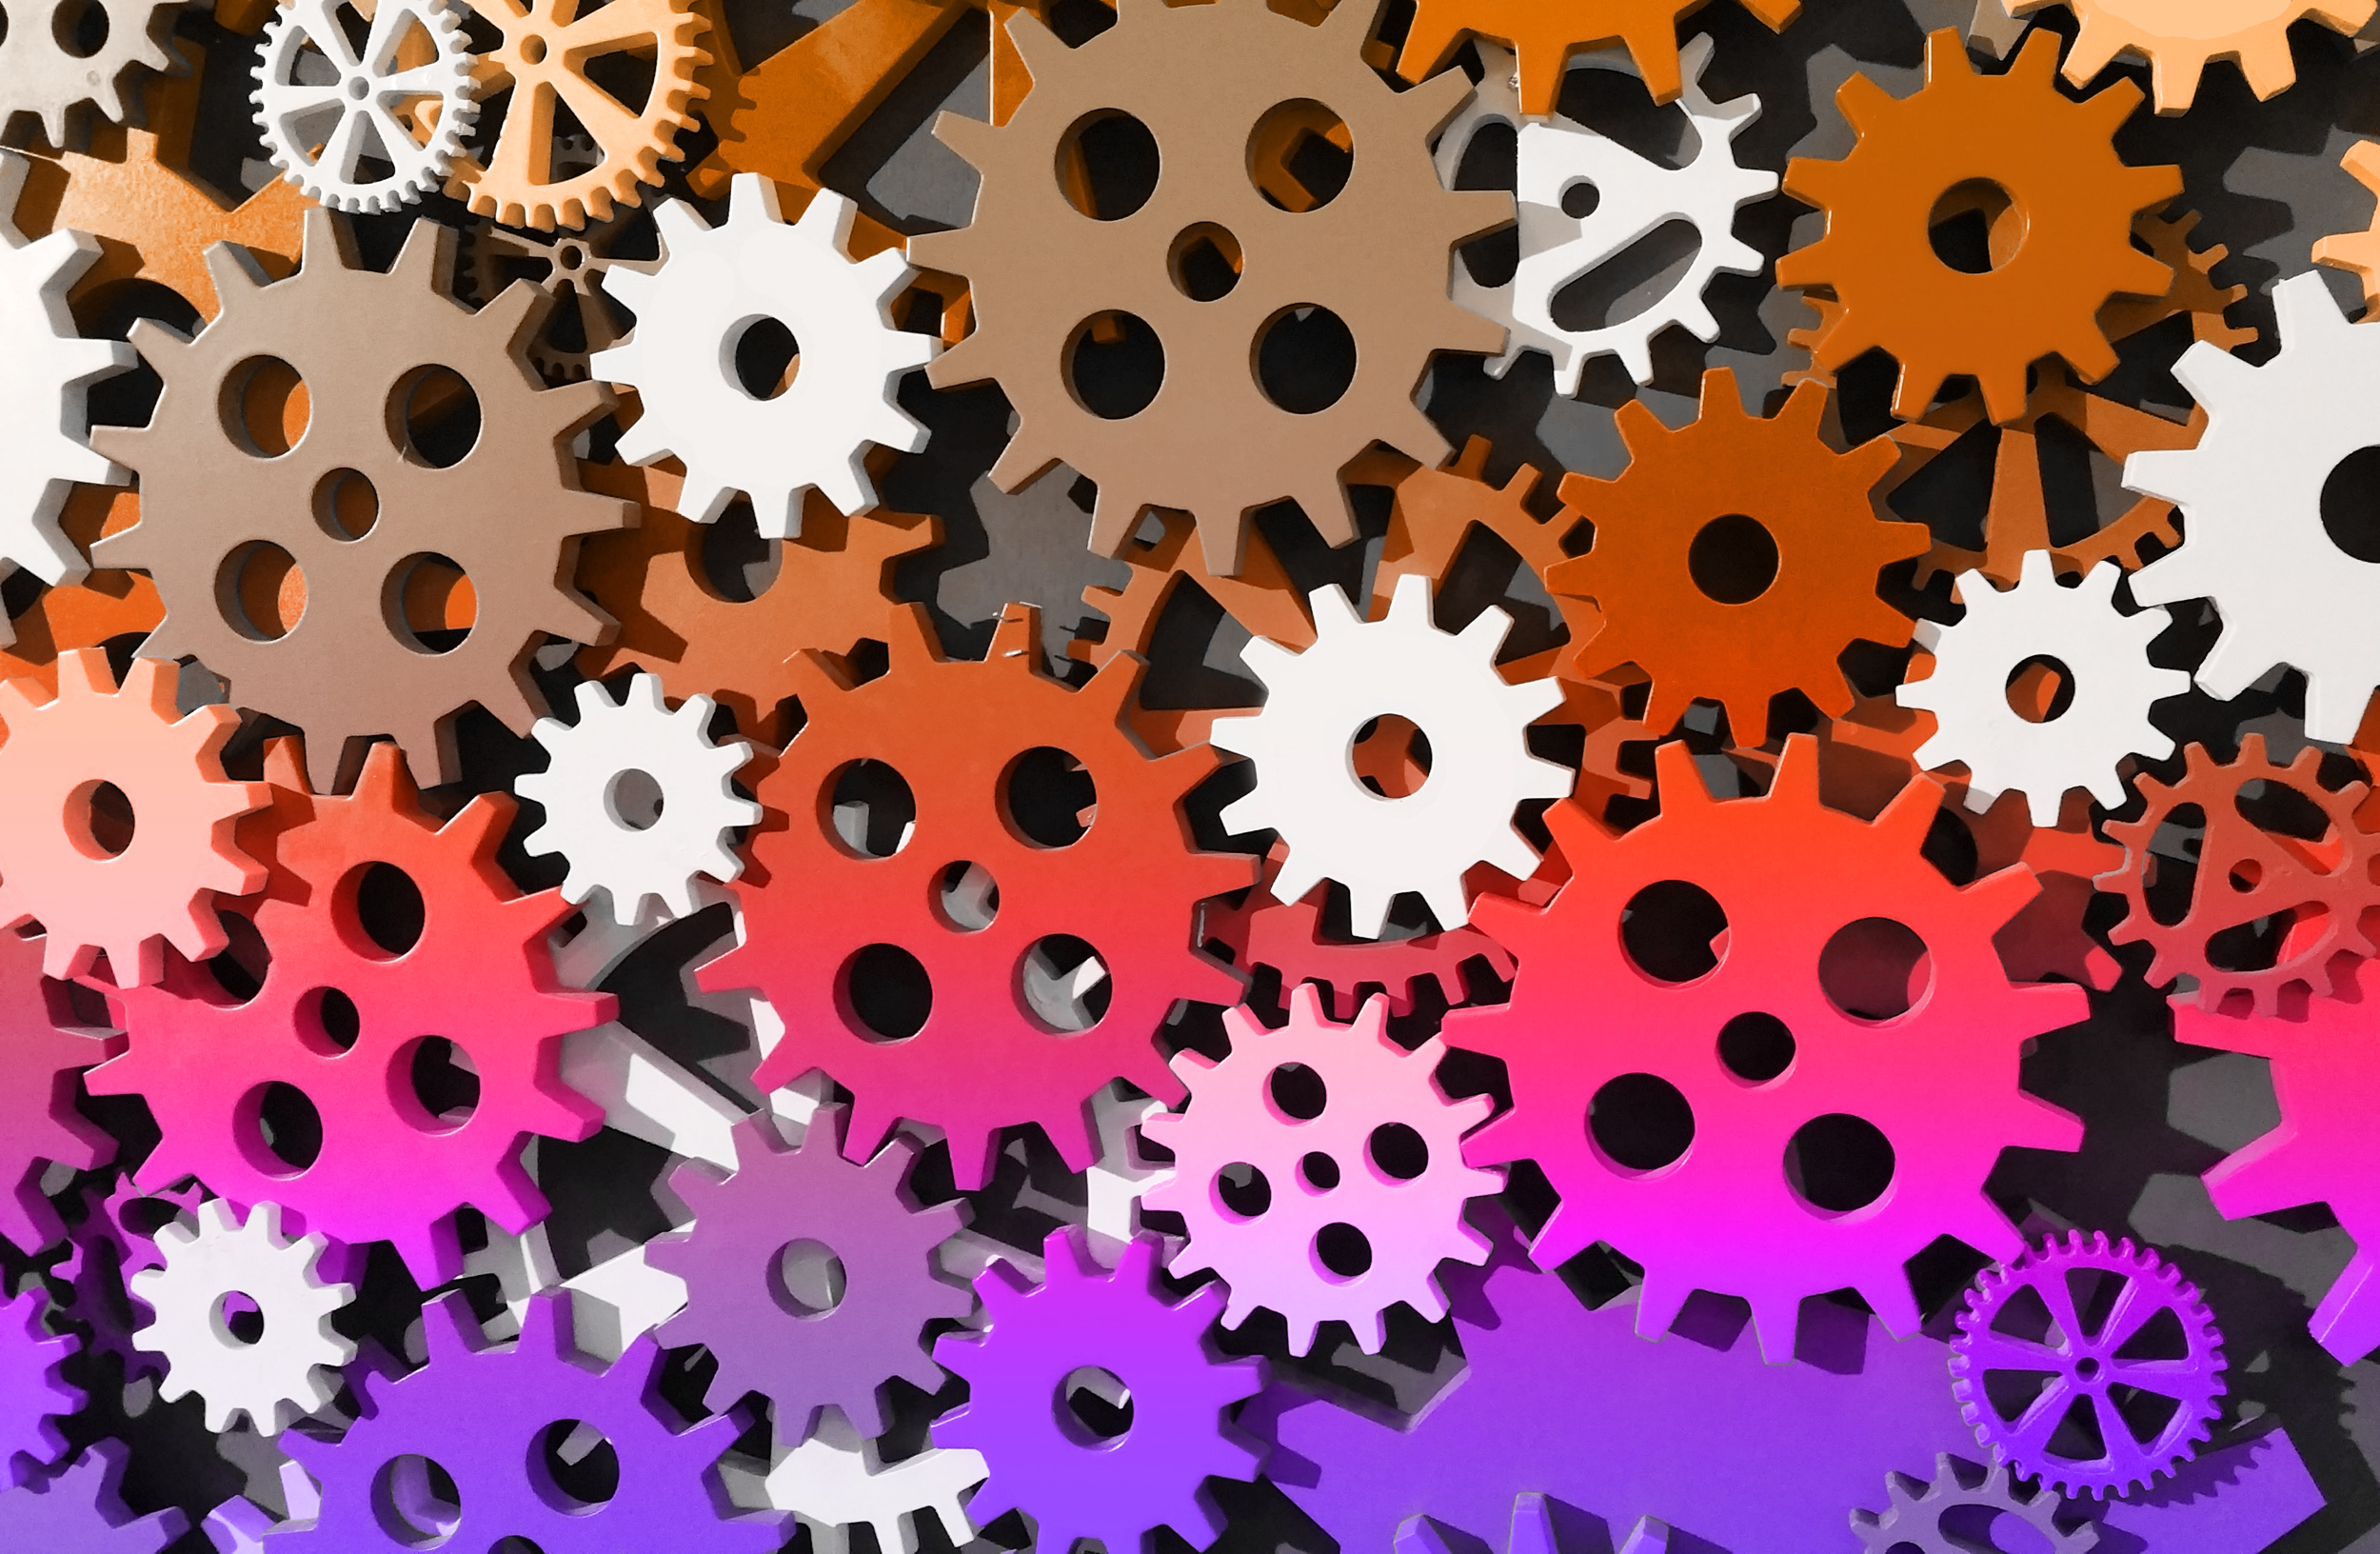 Colorful Cogwheels, Abstract, Rotation, Rotate, Roll, HQ Photo